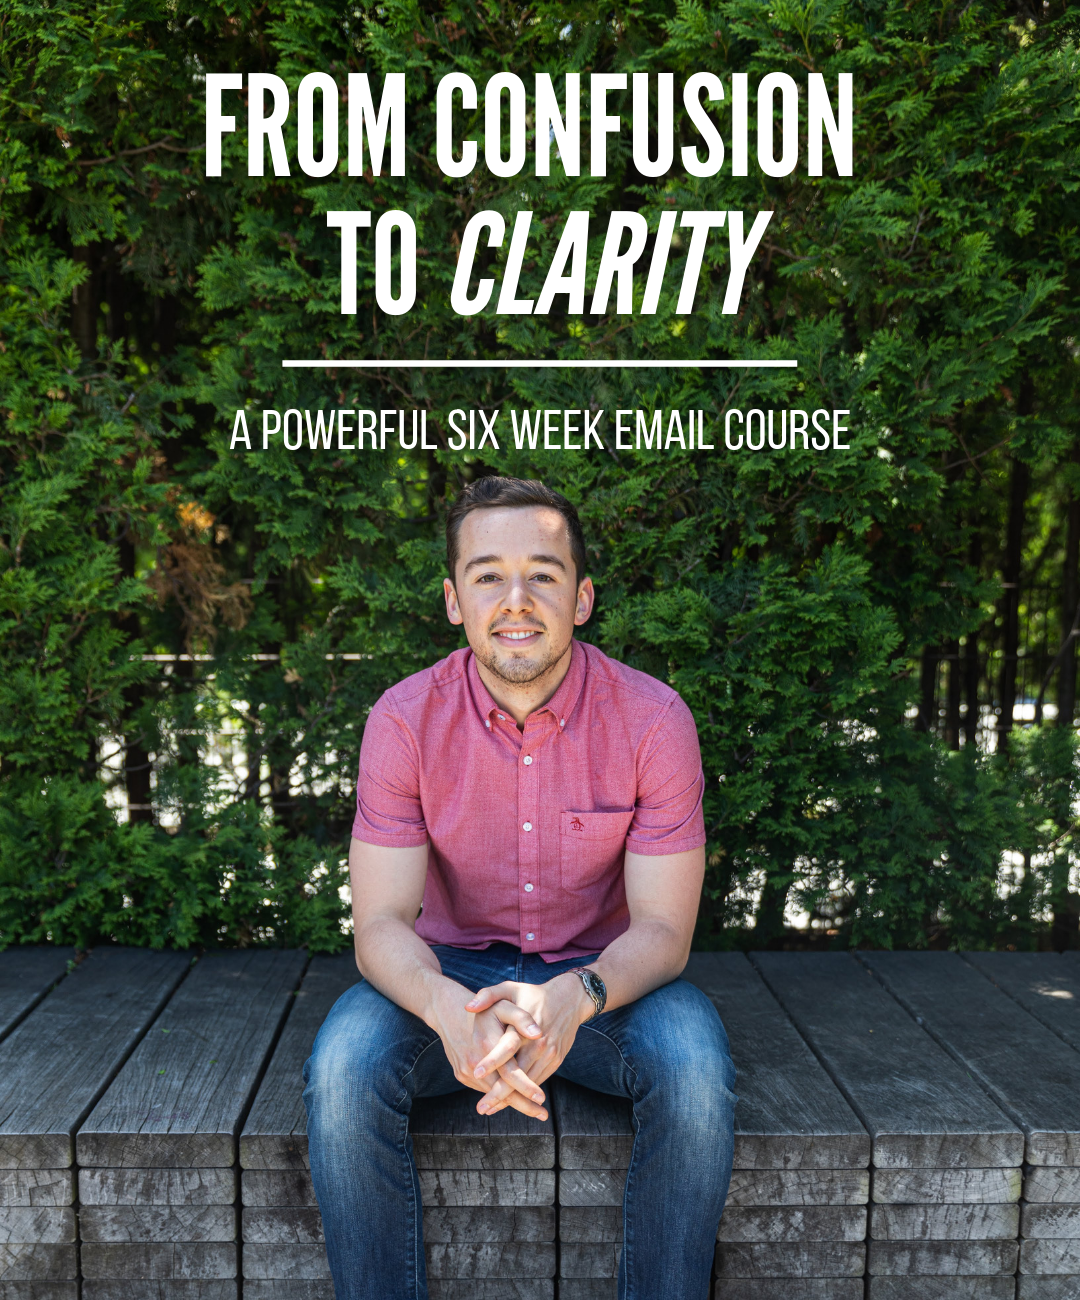 FROM CONFUSION TO CLARITY (5).png